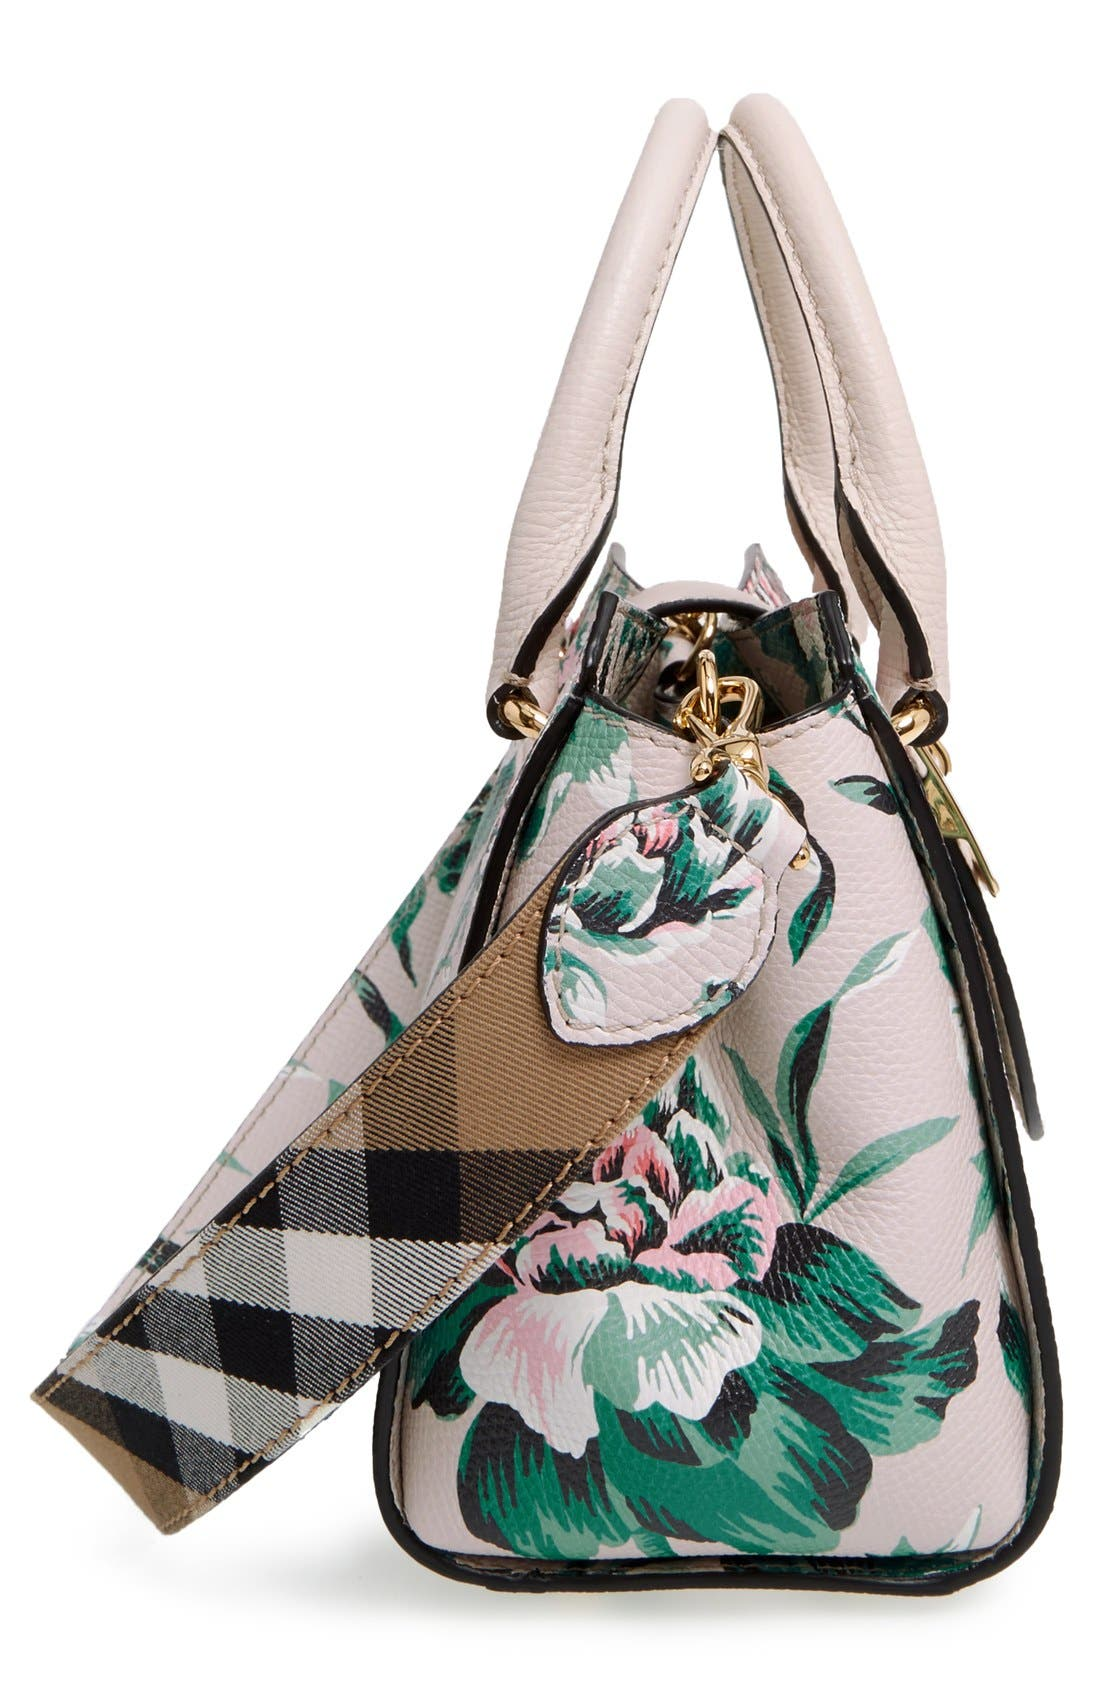 Small Buckle Floral Calfskin Leather Satchel,                             Alternate thumbnail 4, color,                             321